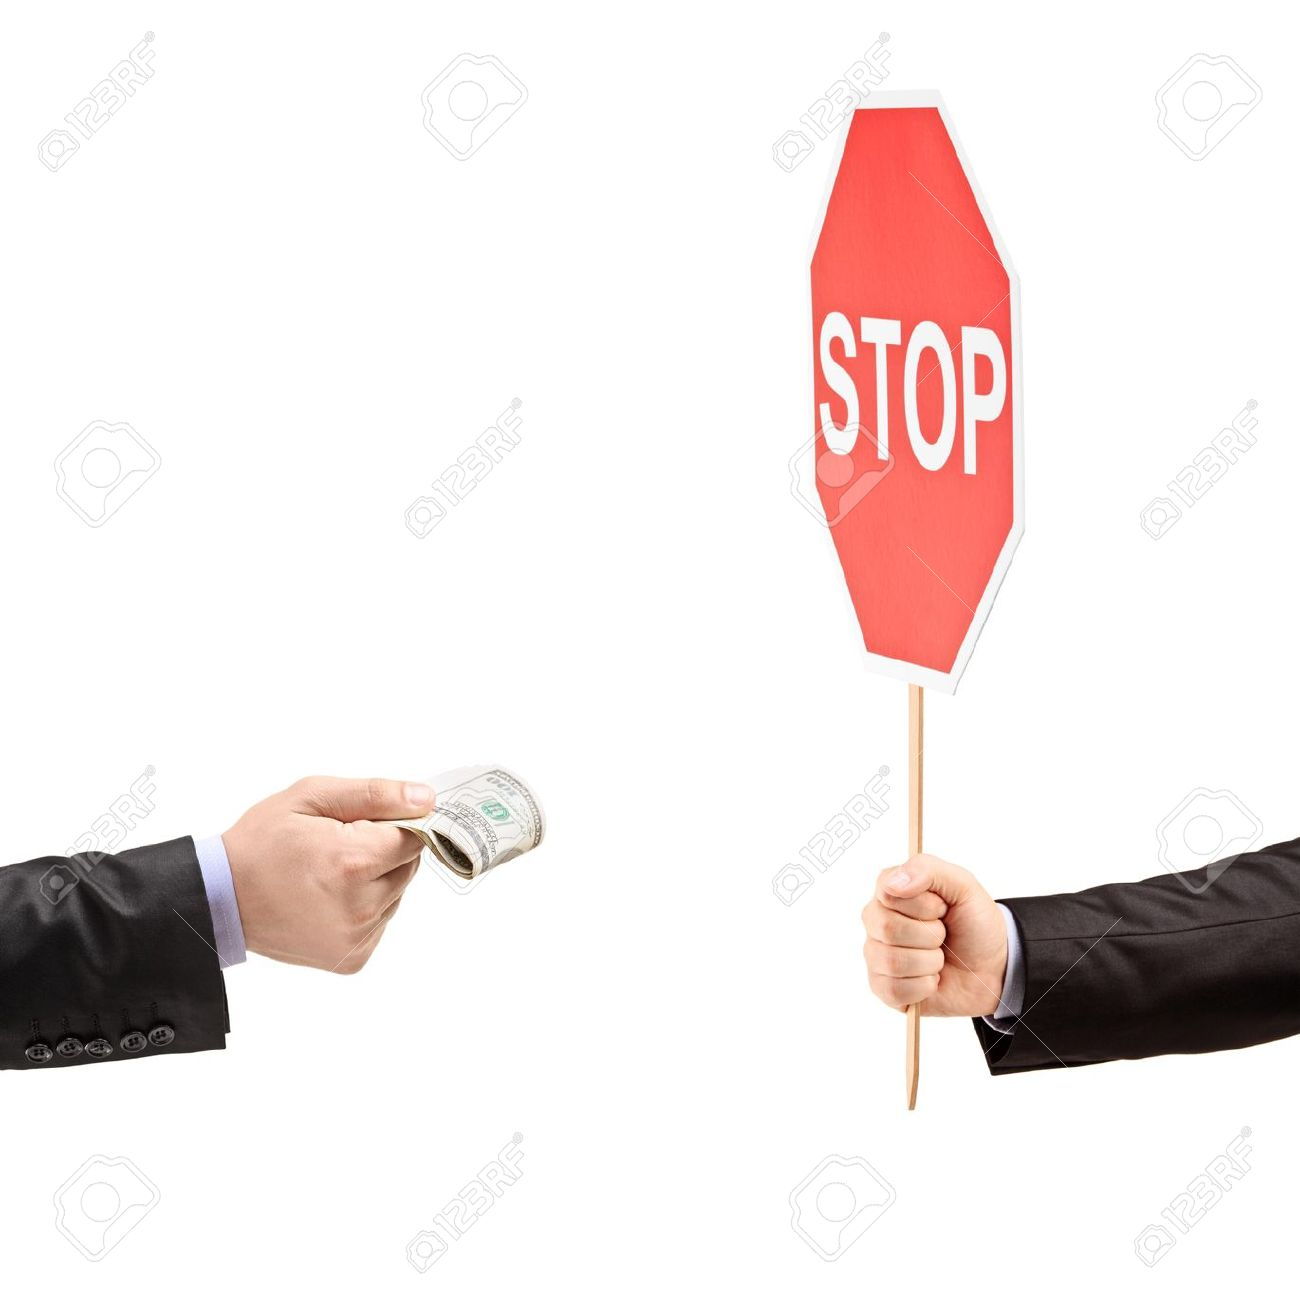 Man with a stop sign saying no to bribery, isolated on white background Stock Photo - 19211800